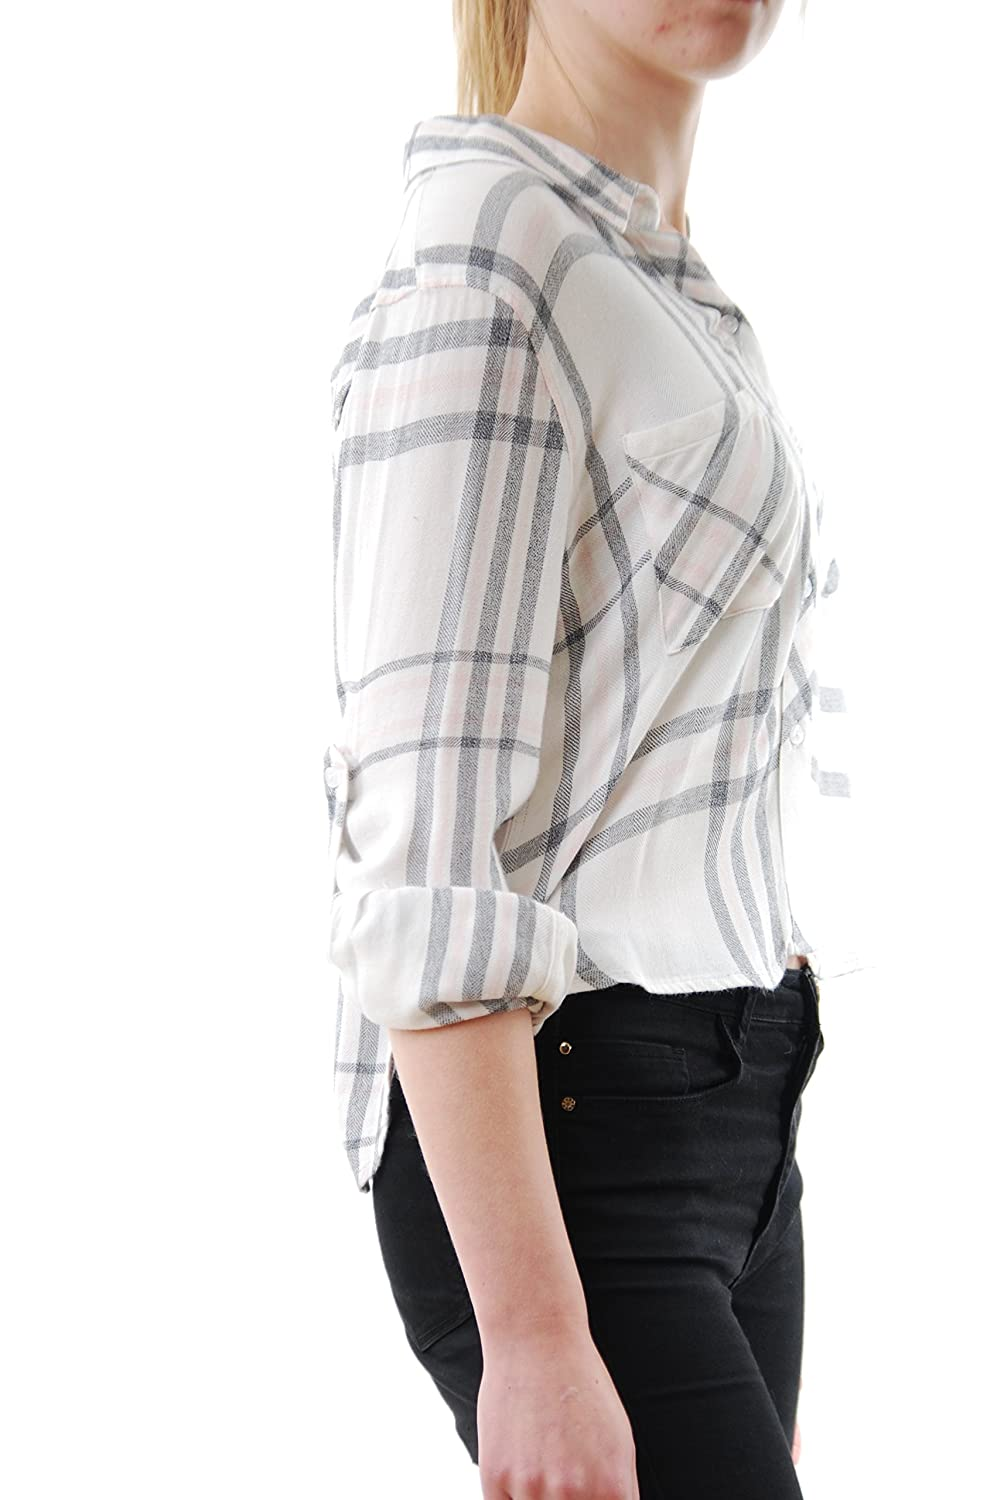 Rails Women's Rian Rayon Cropped Button Down White/Charcoal/Pink Size S:  Amazon.co.uk: Clothing